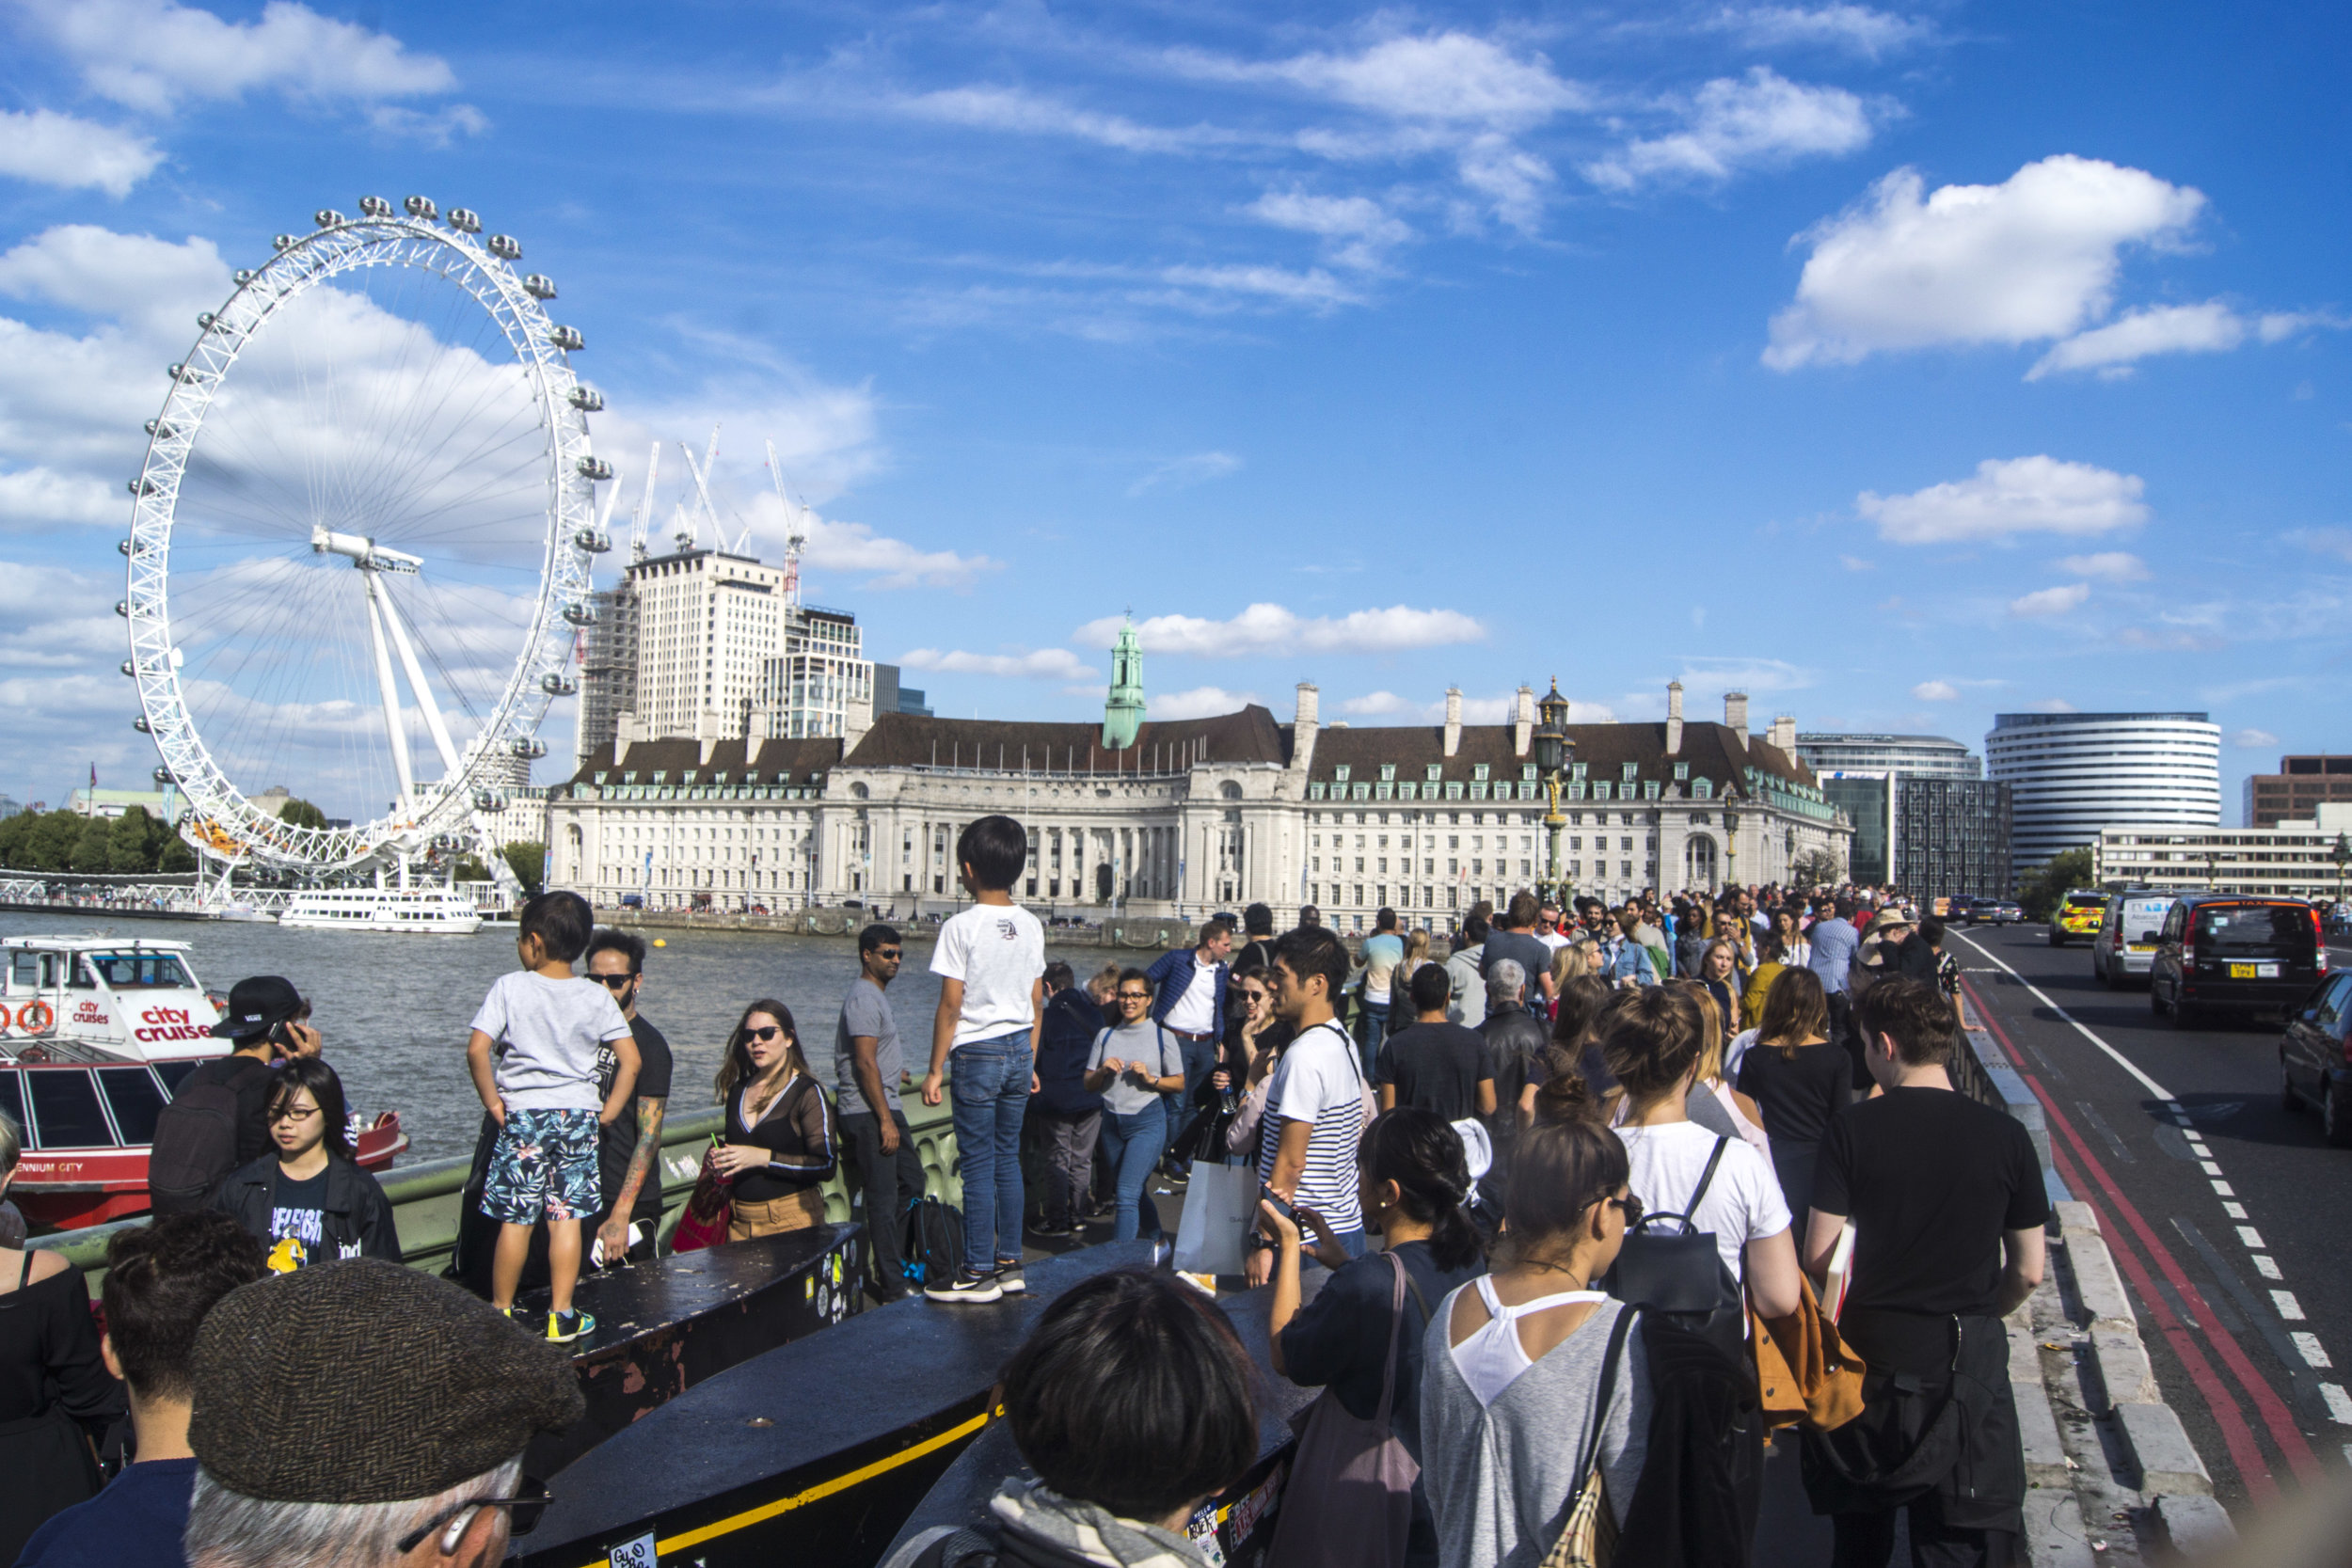 Westminster Bridge:  I found this a stirring site. The kids in the foreground are standing on barricades erected to prevent a terrorist attack like the one that killed 6 people here in 2017. Instead of cowering, the multicultural British community carry on, relishing in the sunshine, and utilising the barricades as a viewing platform.